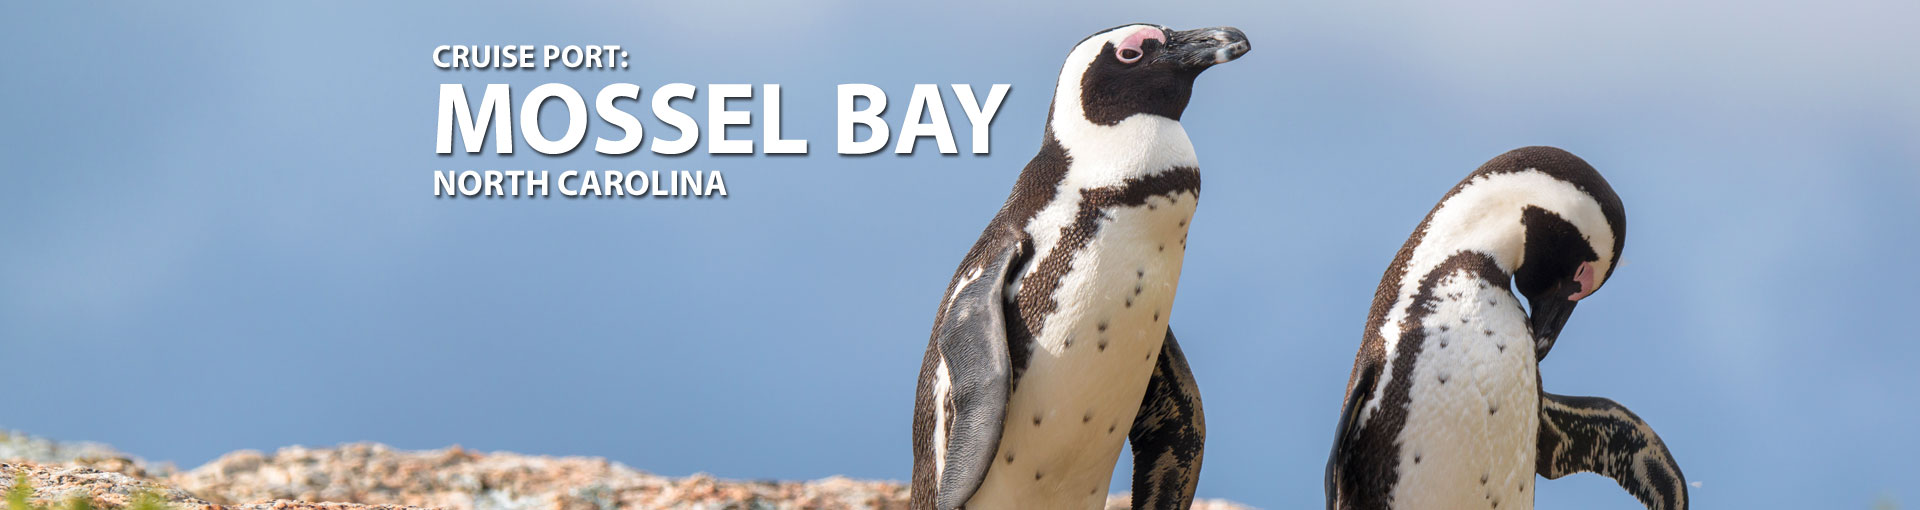 Cruises to Mossel Bay, South Africa